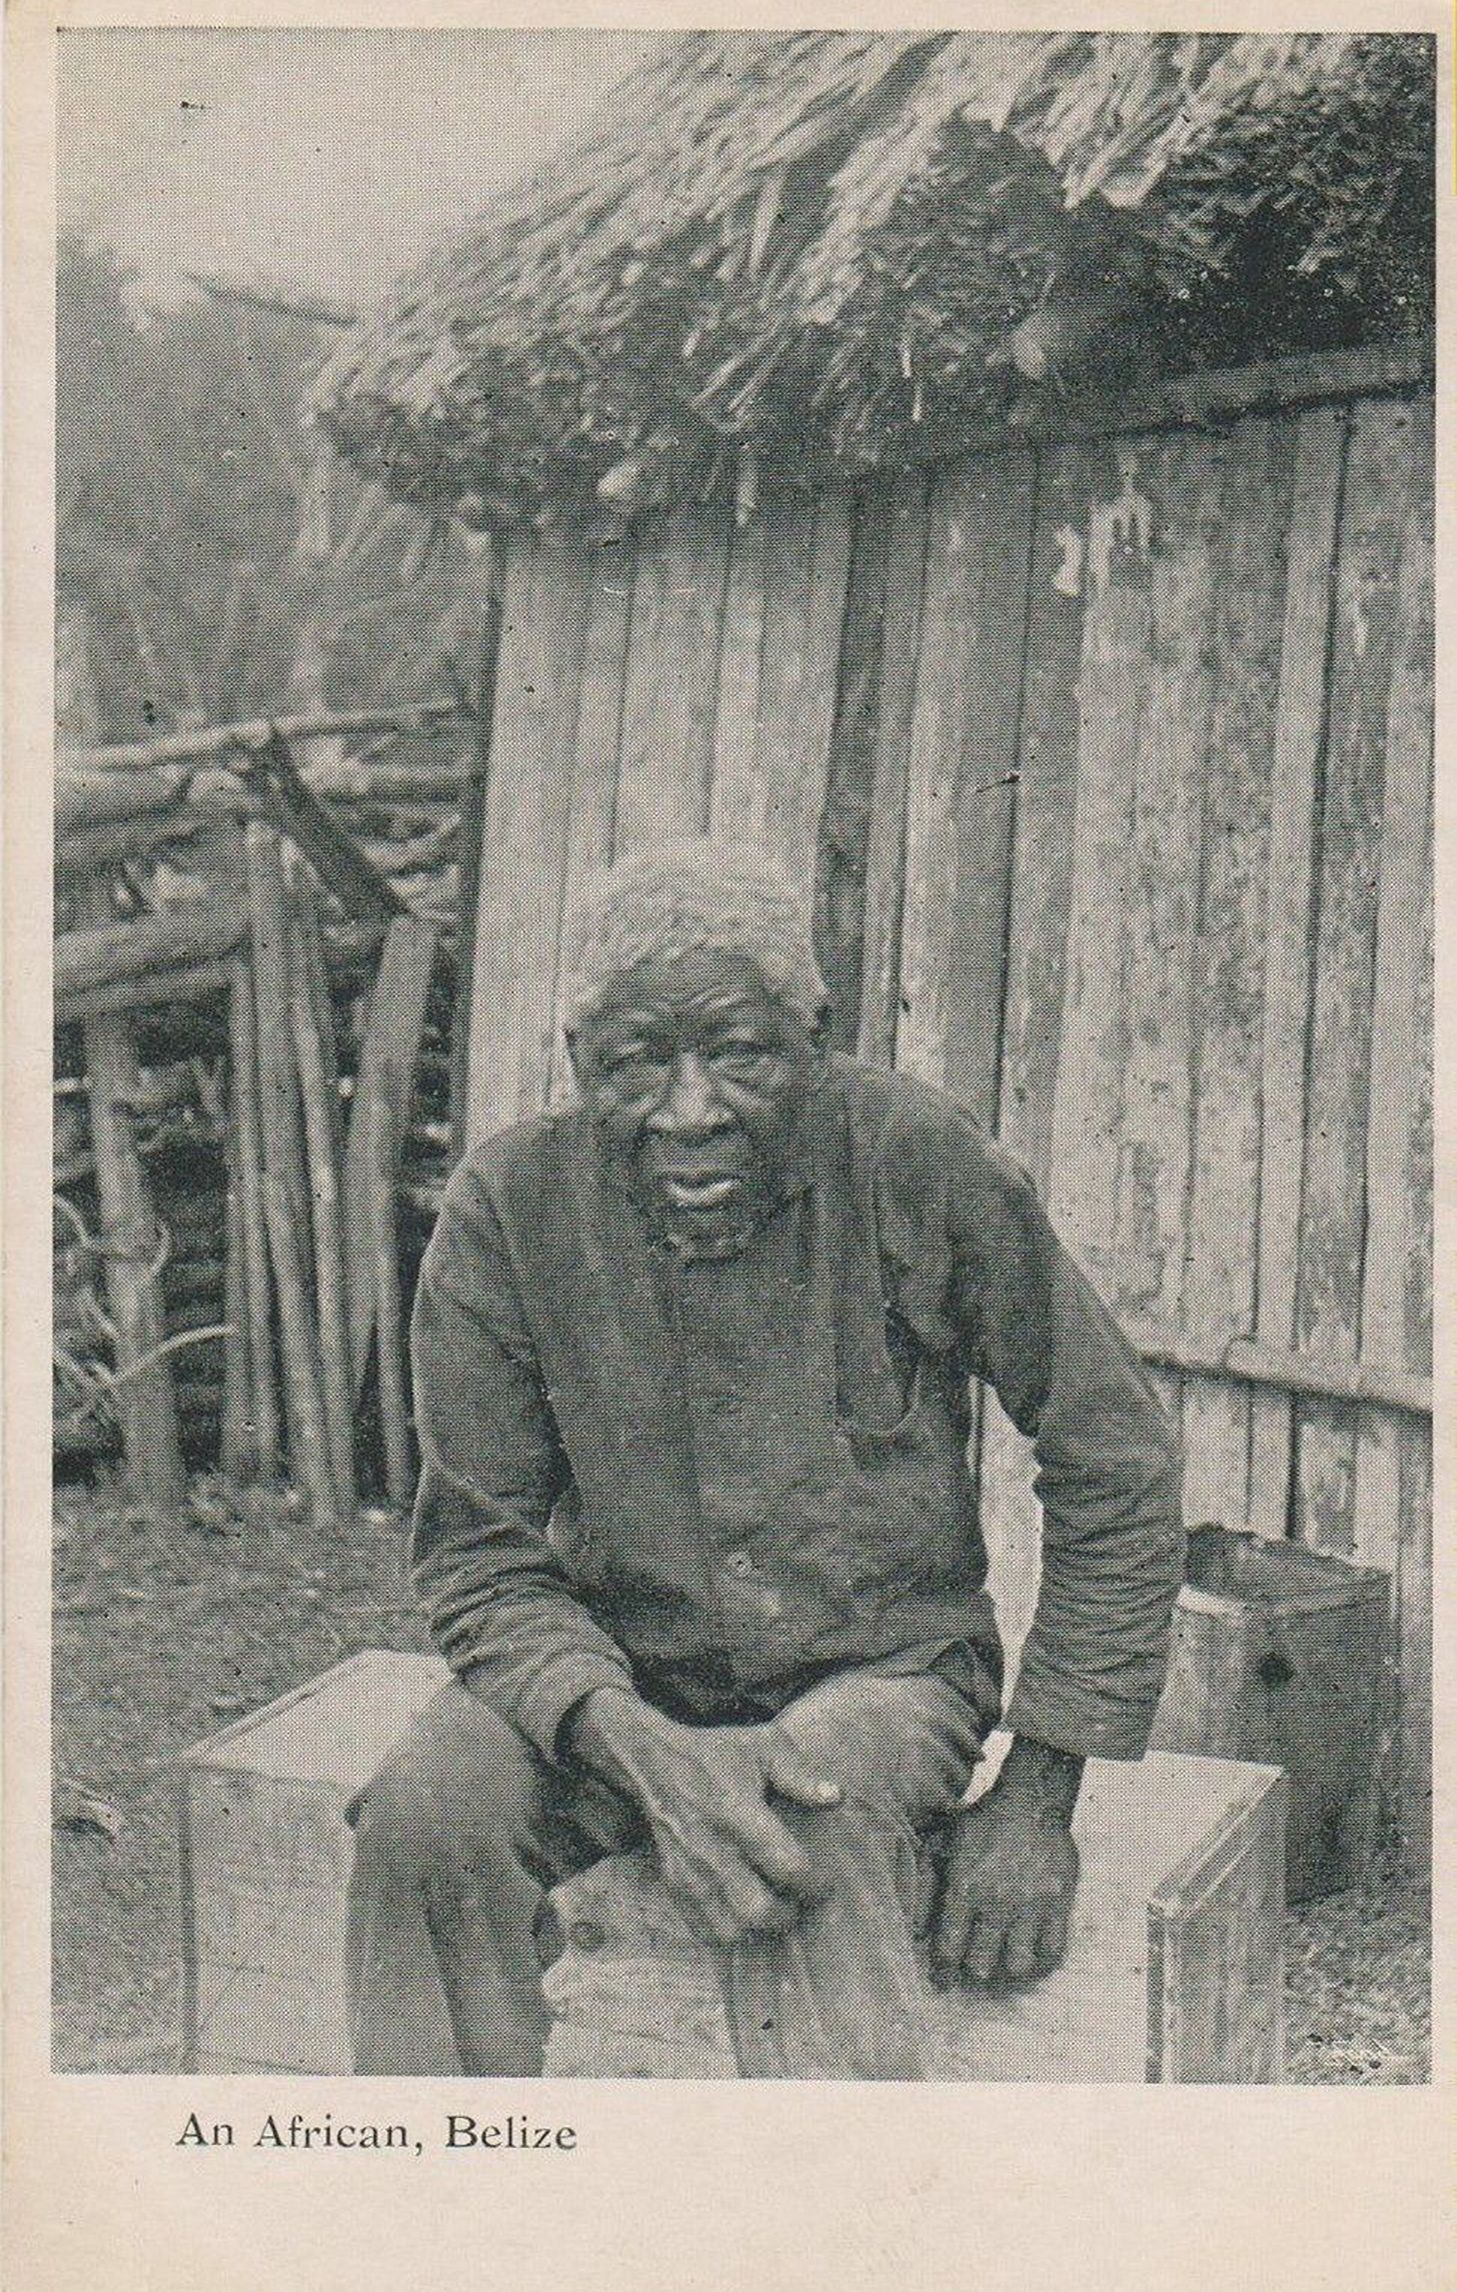 Belizean Man 1920'S Belizean, Historical photos, Photo